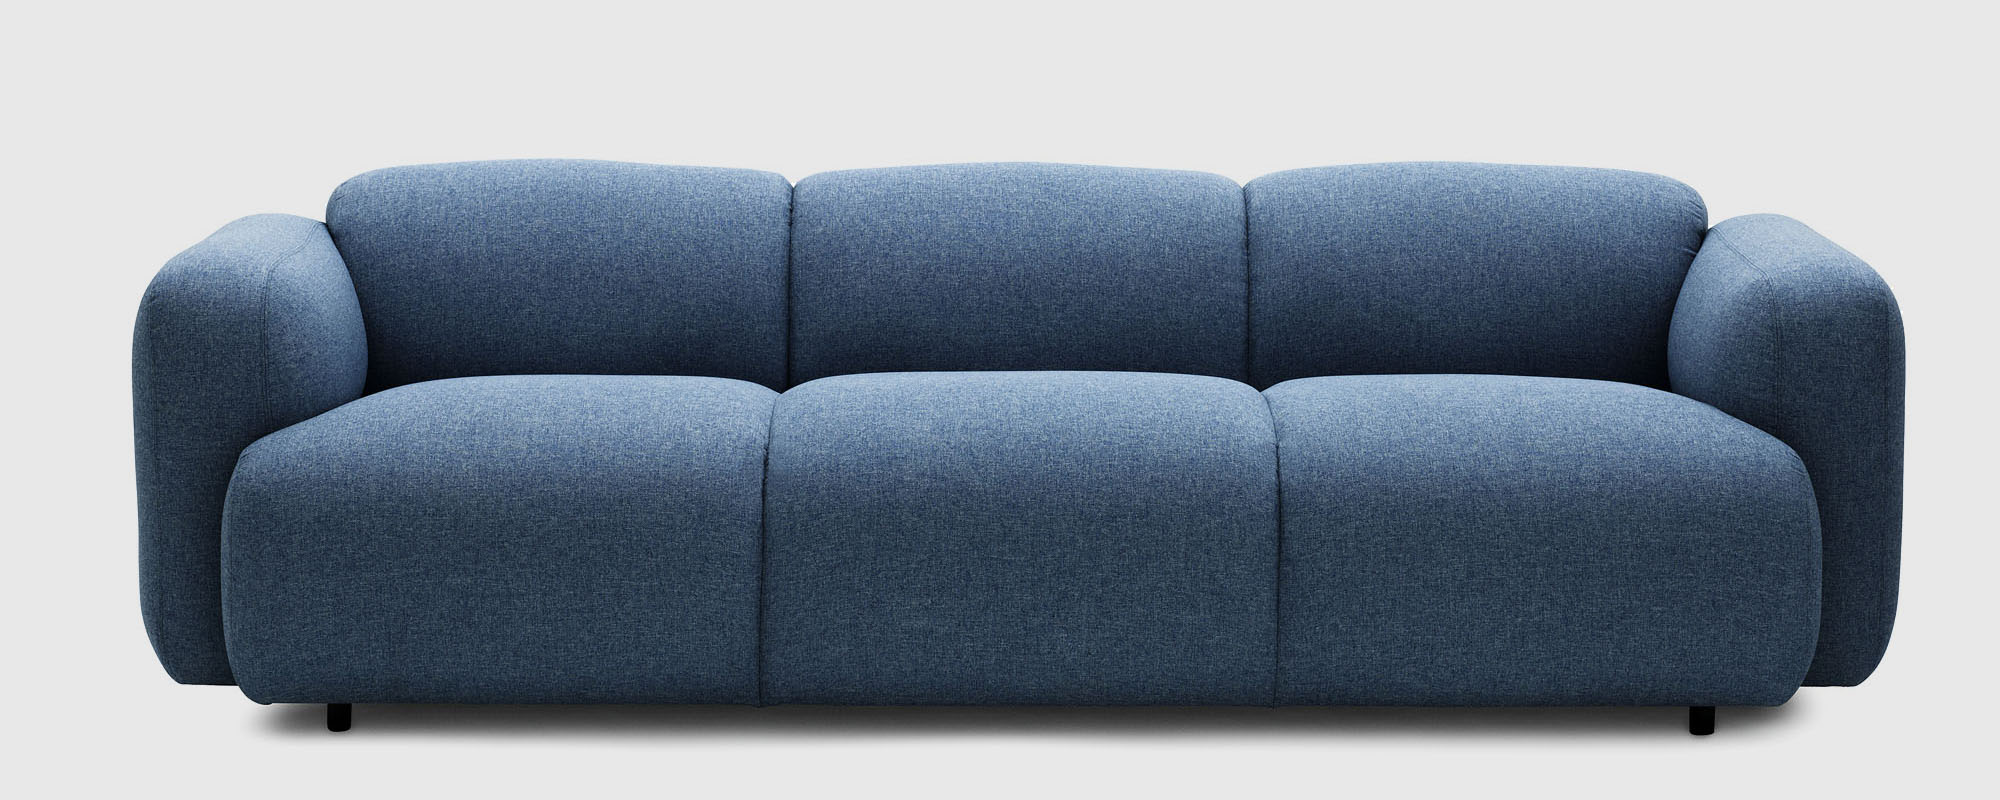 SwellSofa66009_2000x800-grey